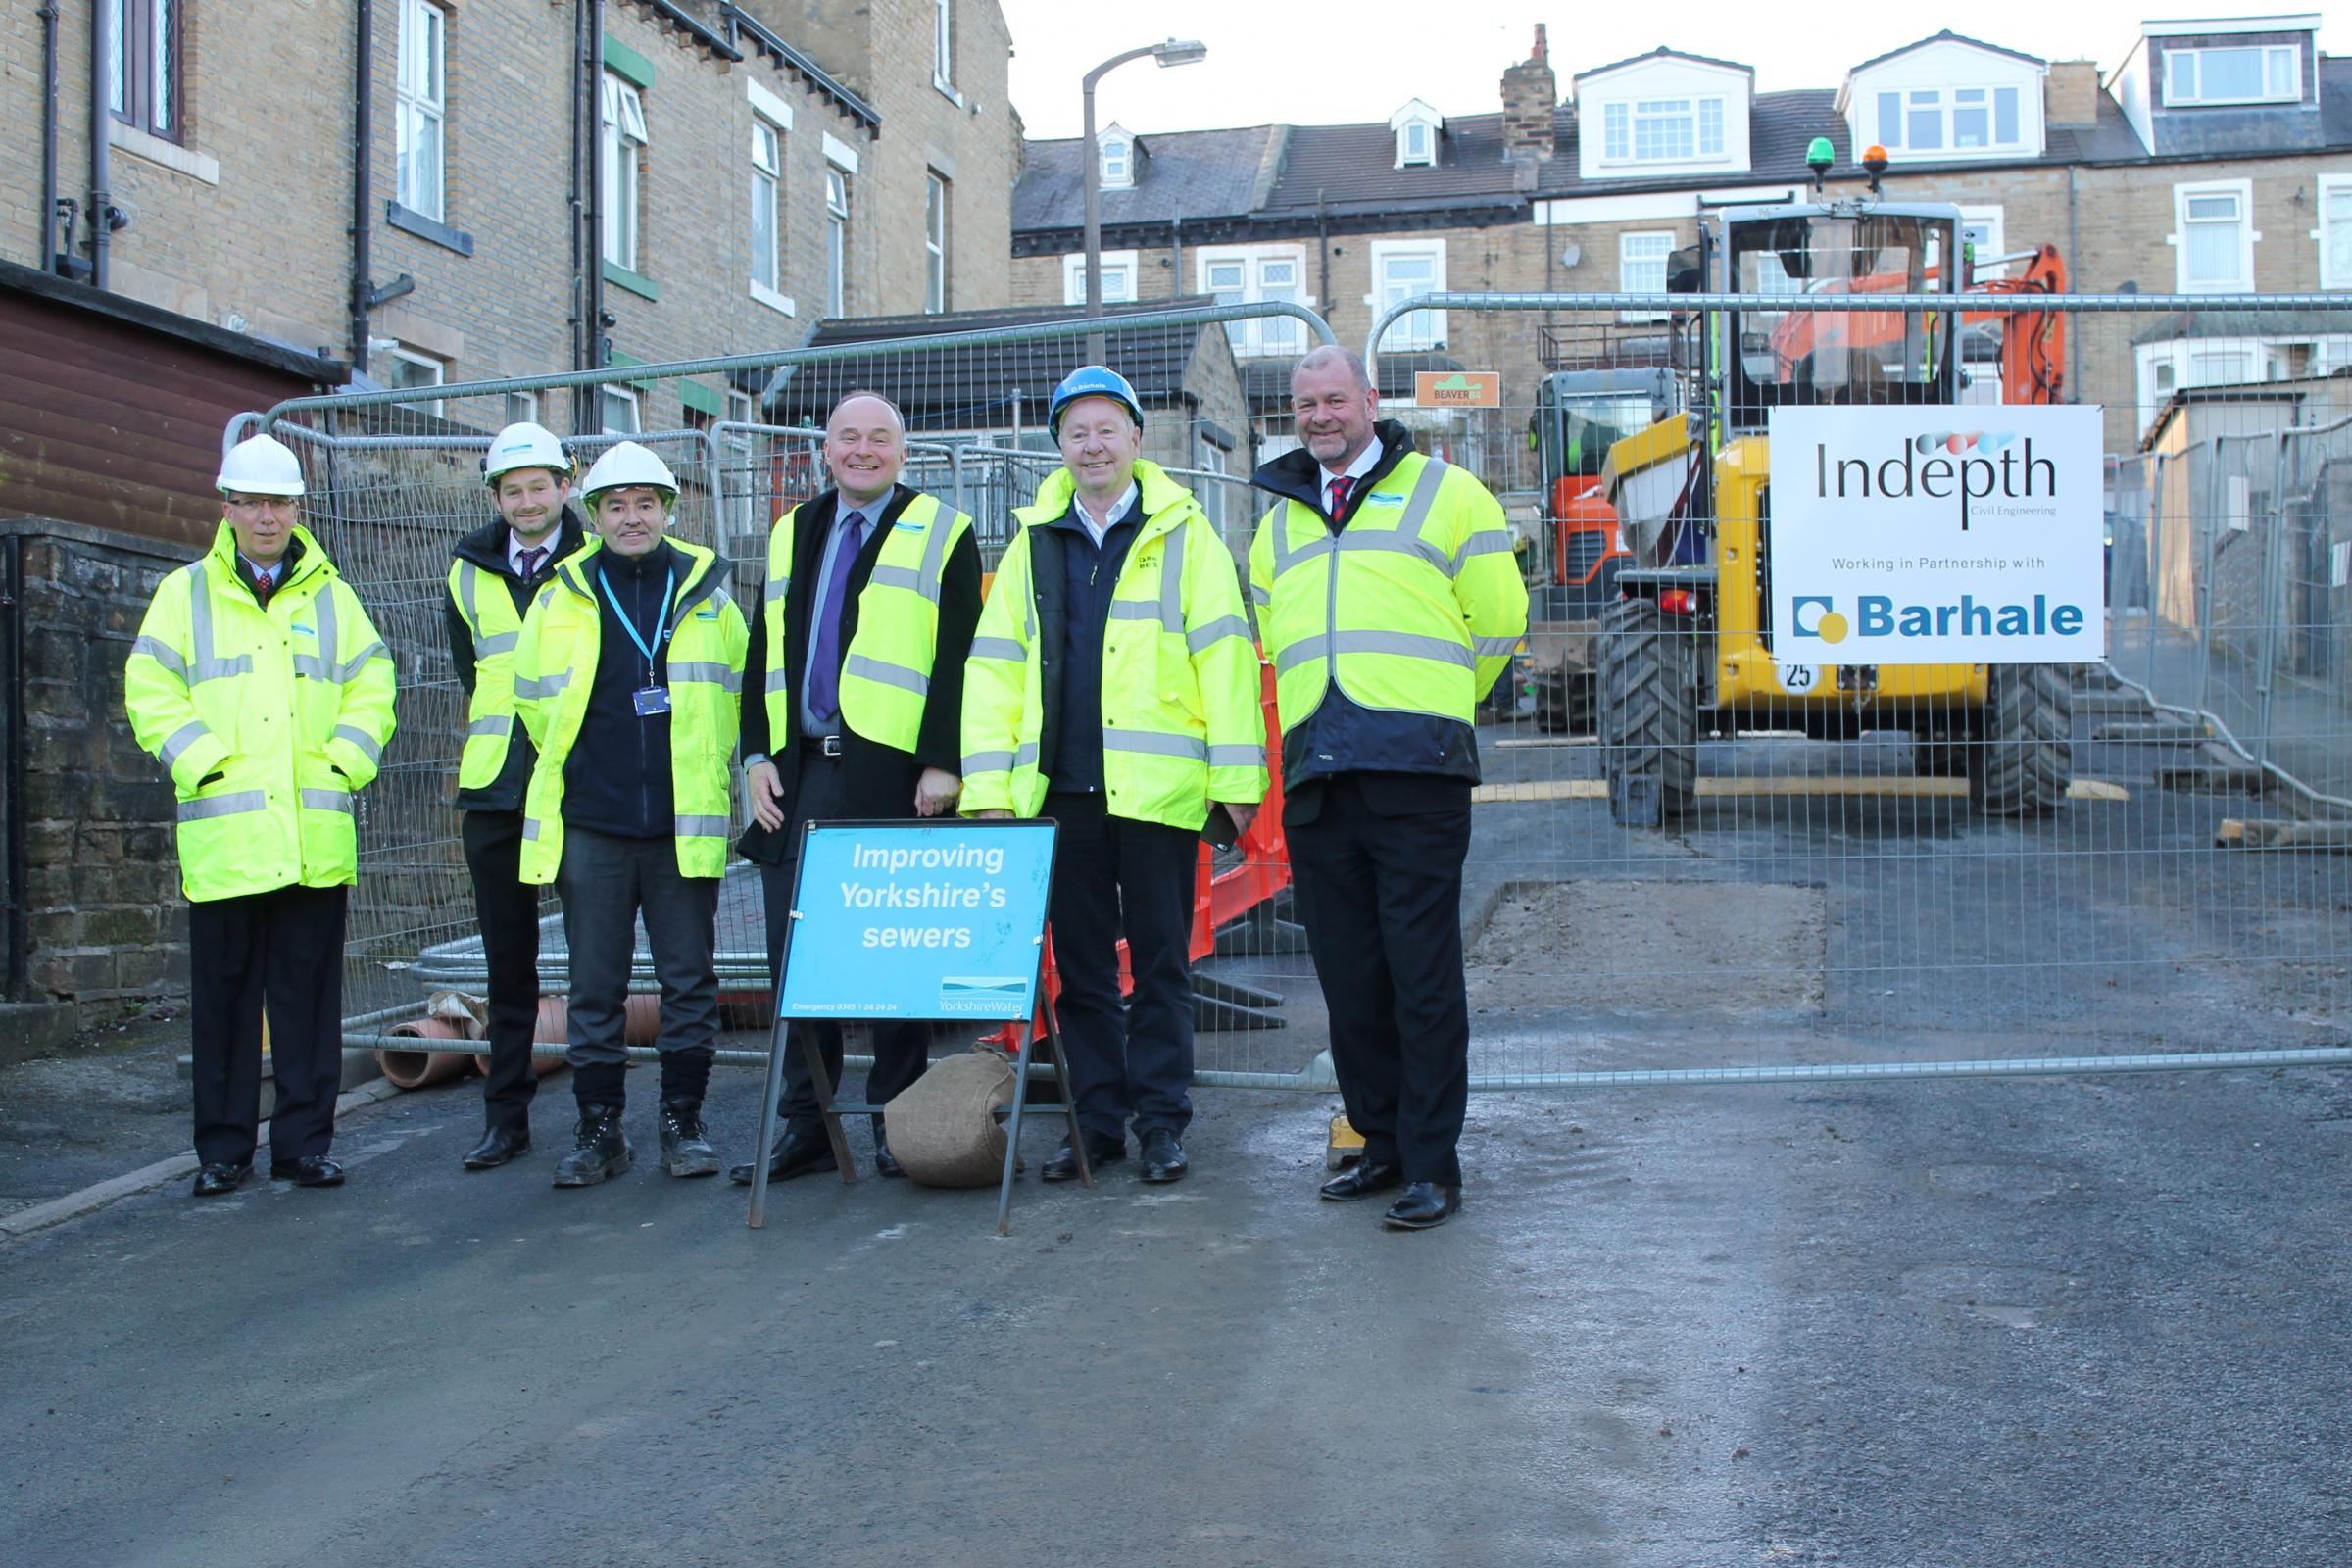 MP John Grogan, third from right, with engineers working on the sewer scheme